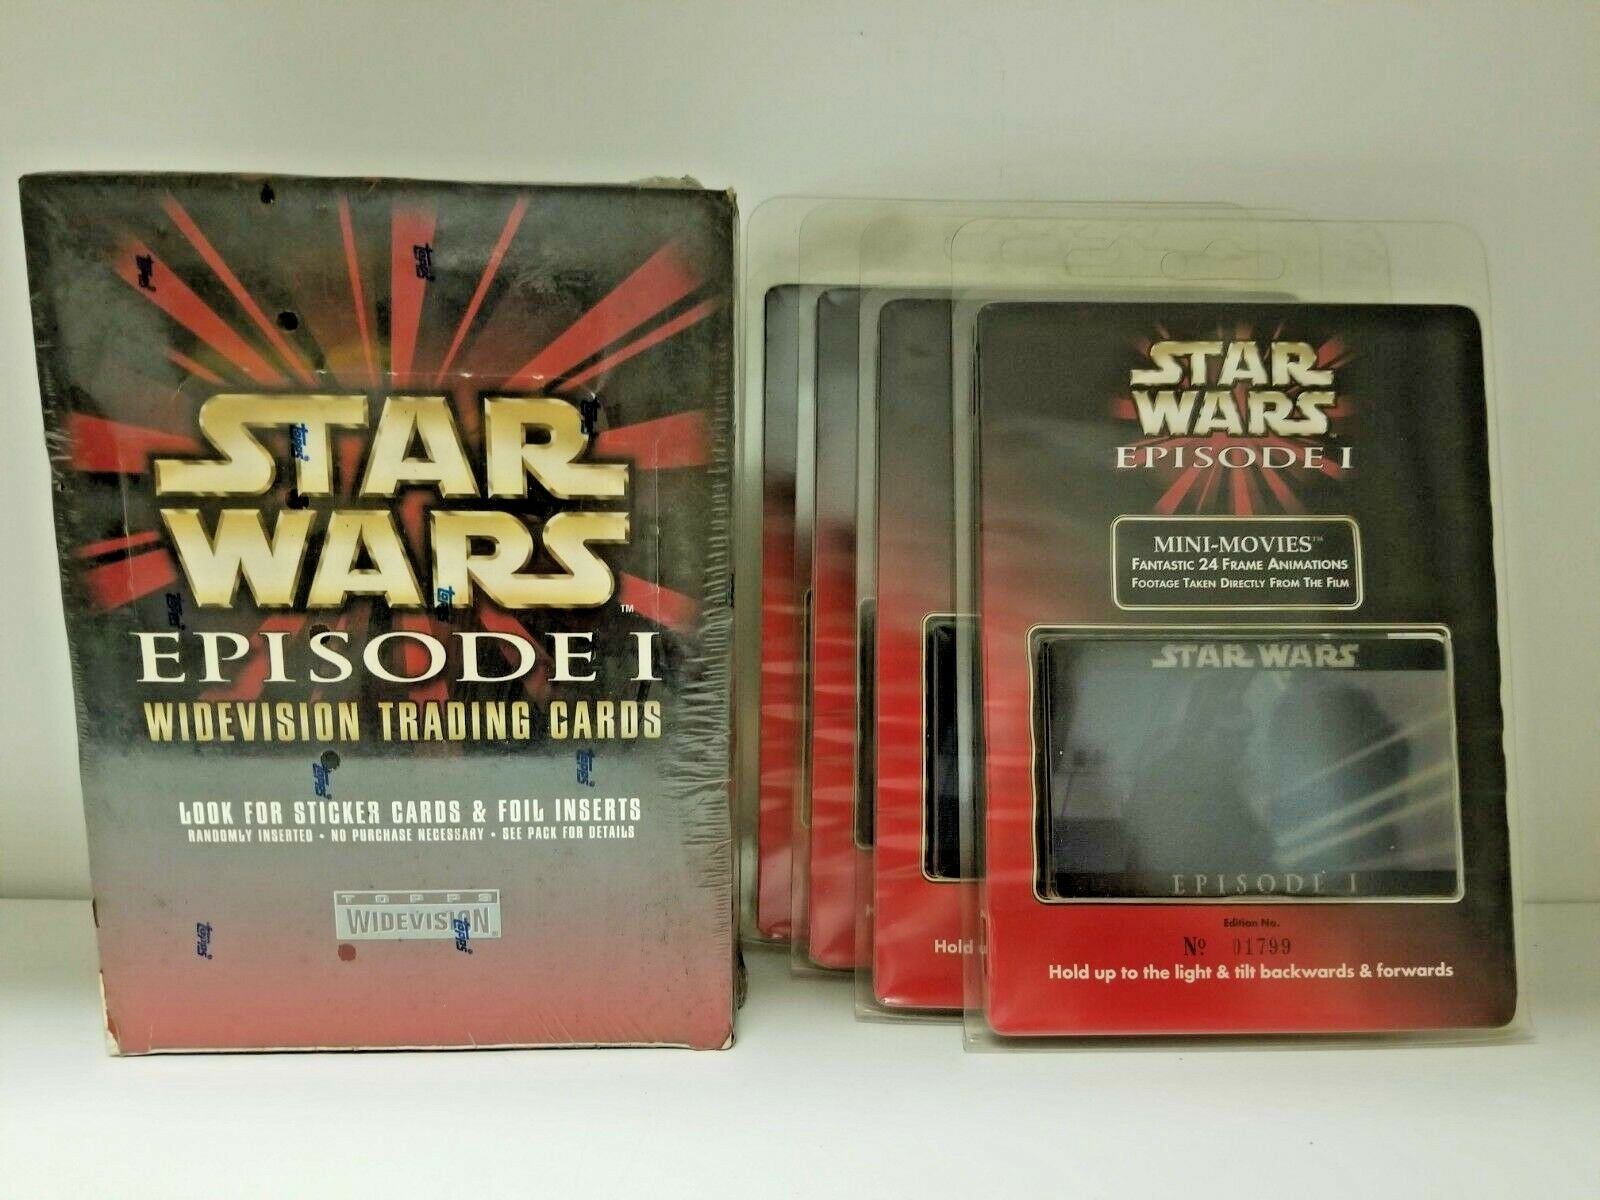 2019 Lot Of 2 Star Wars Topps Promo Cards /& 1 Sticker